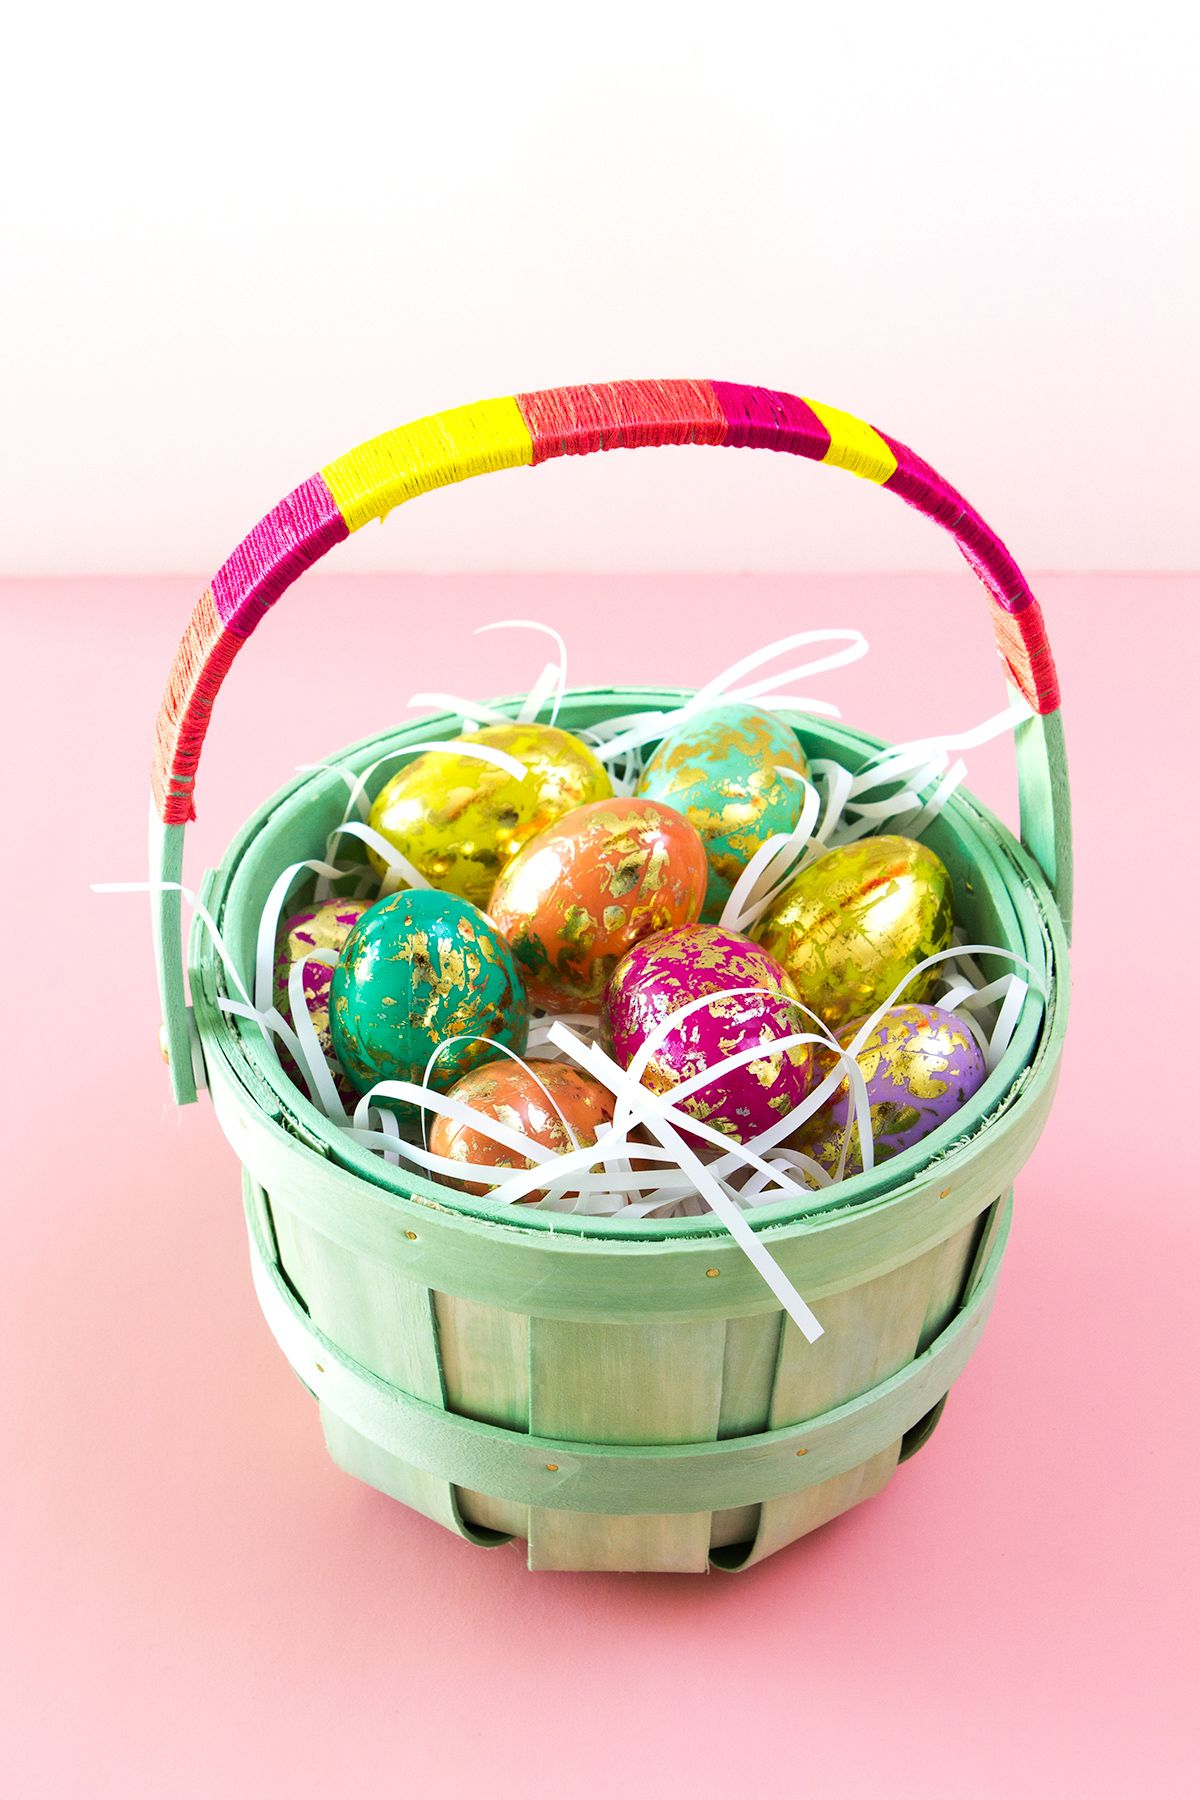 40 Easy Diy Easter Basket Ideas For All Ages 2021